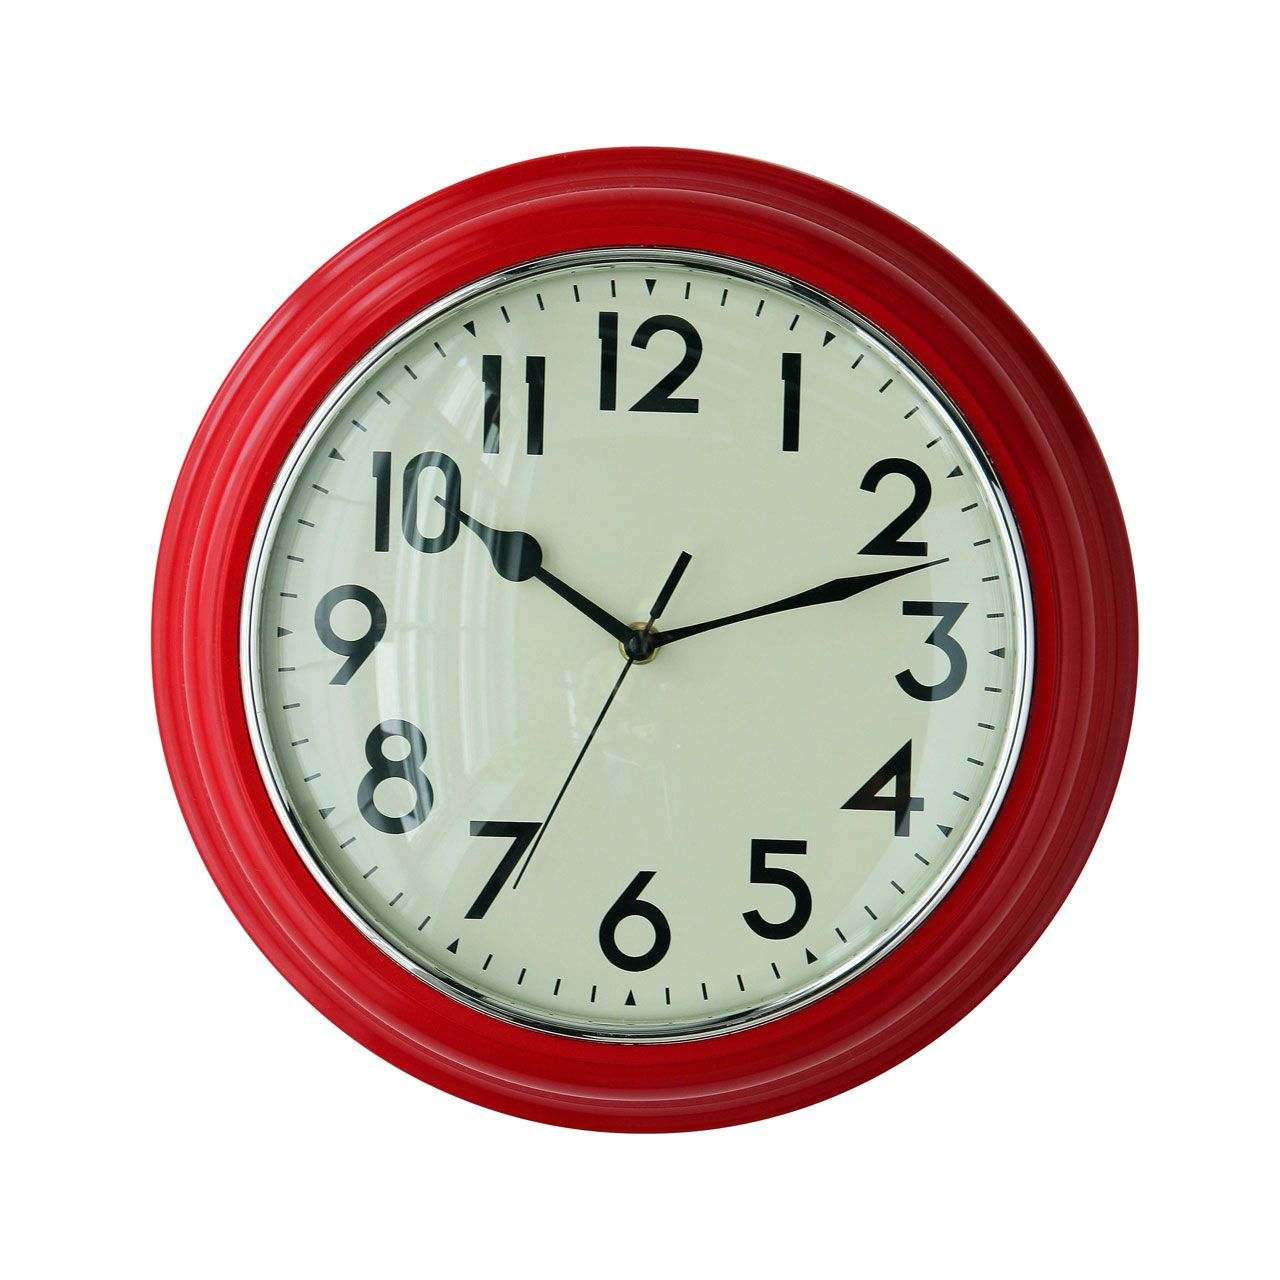 Premier housewares red wall clock 2200340 add a touch of premier housewares red wall clock 2200340 add a touch of warmth and luxury to amipublicfo Images